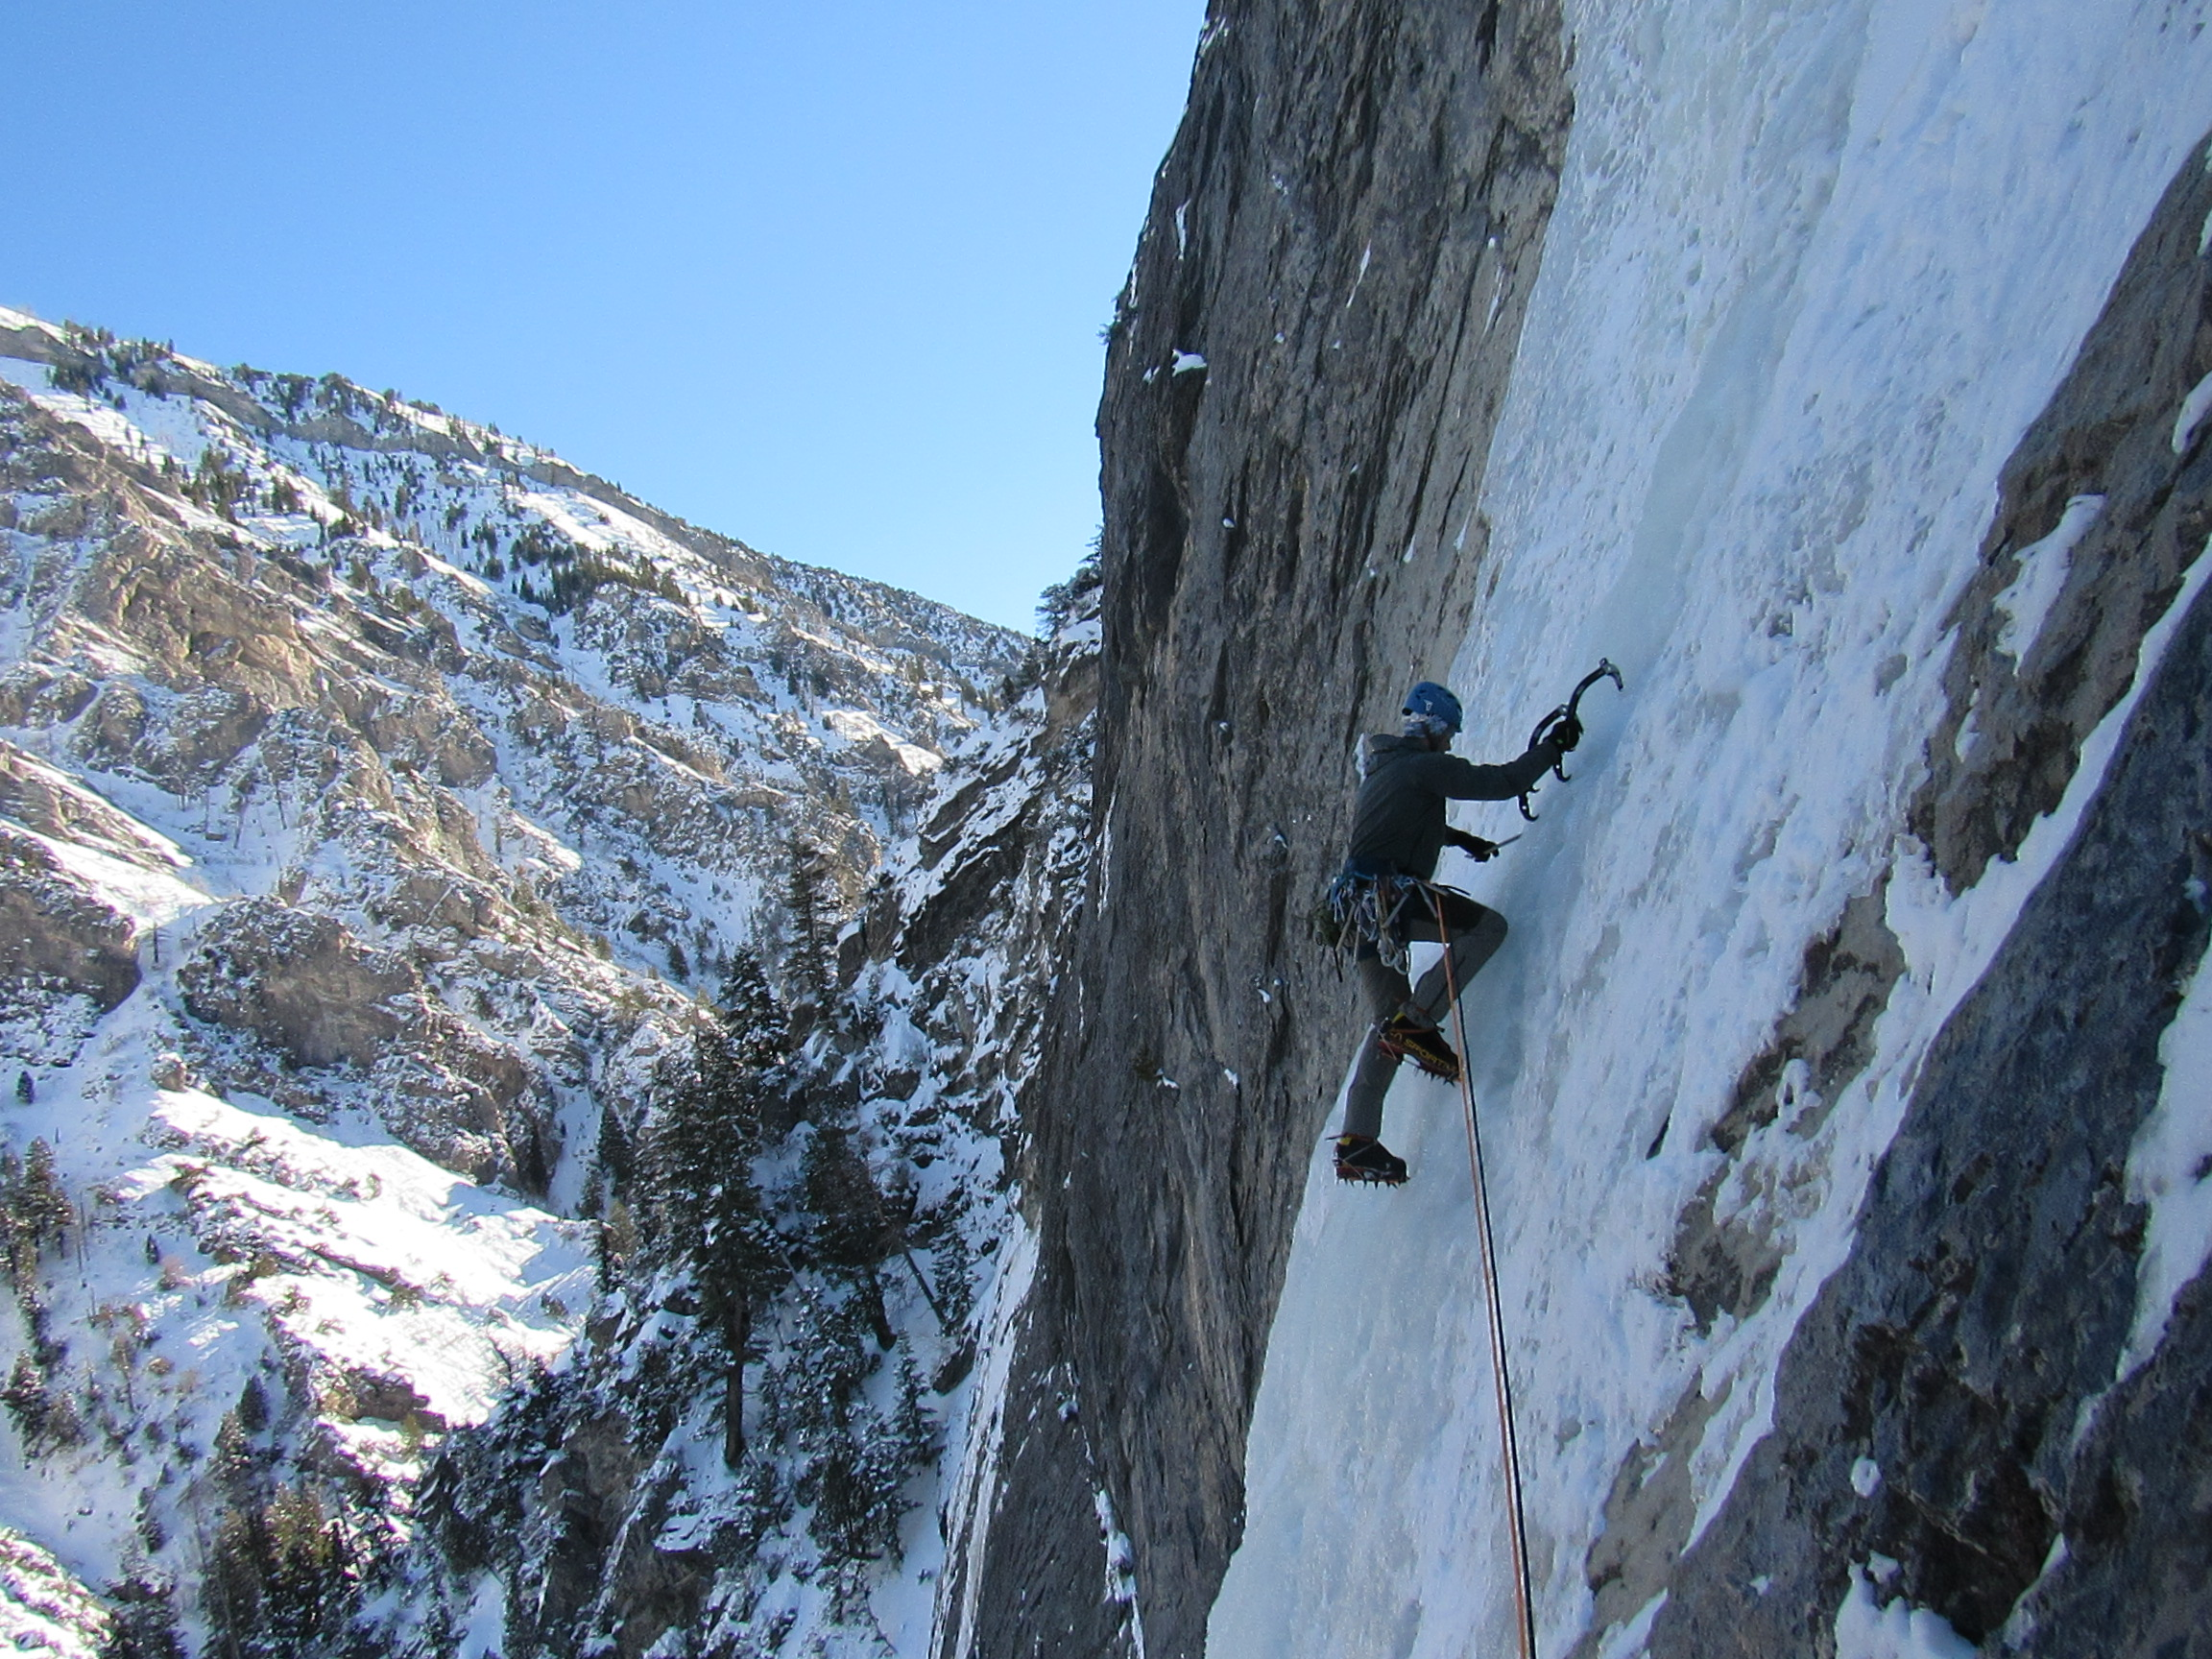 Ice Climbing - Guided climbs or instruction based out of the Wasatch mountains in UtahLearn more ➝